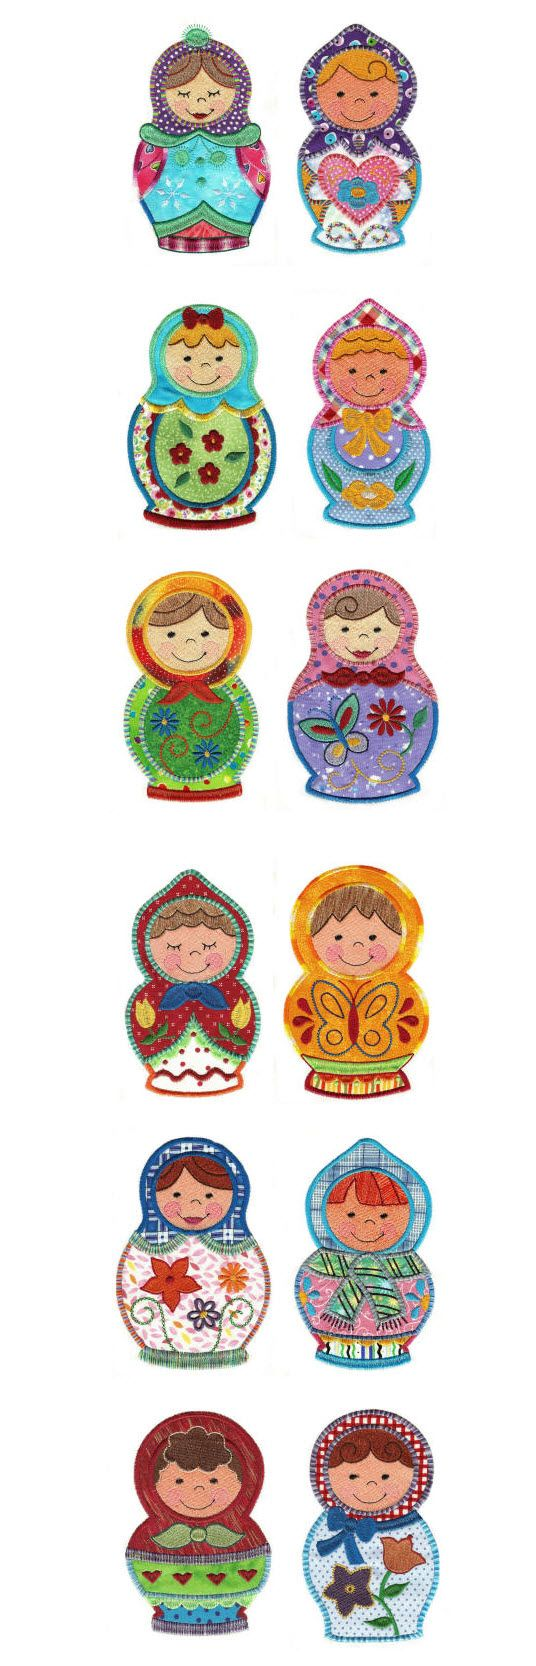 Embroidery | Free Machine Embroidery Designs| Cute Russian Dolls Applique